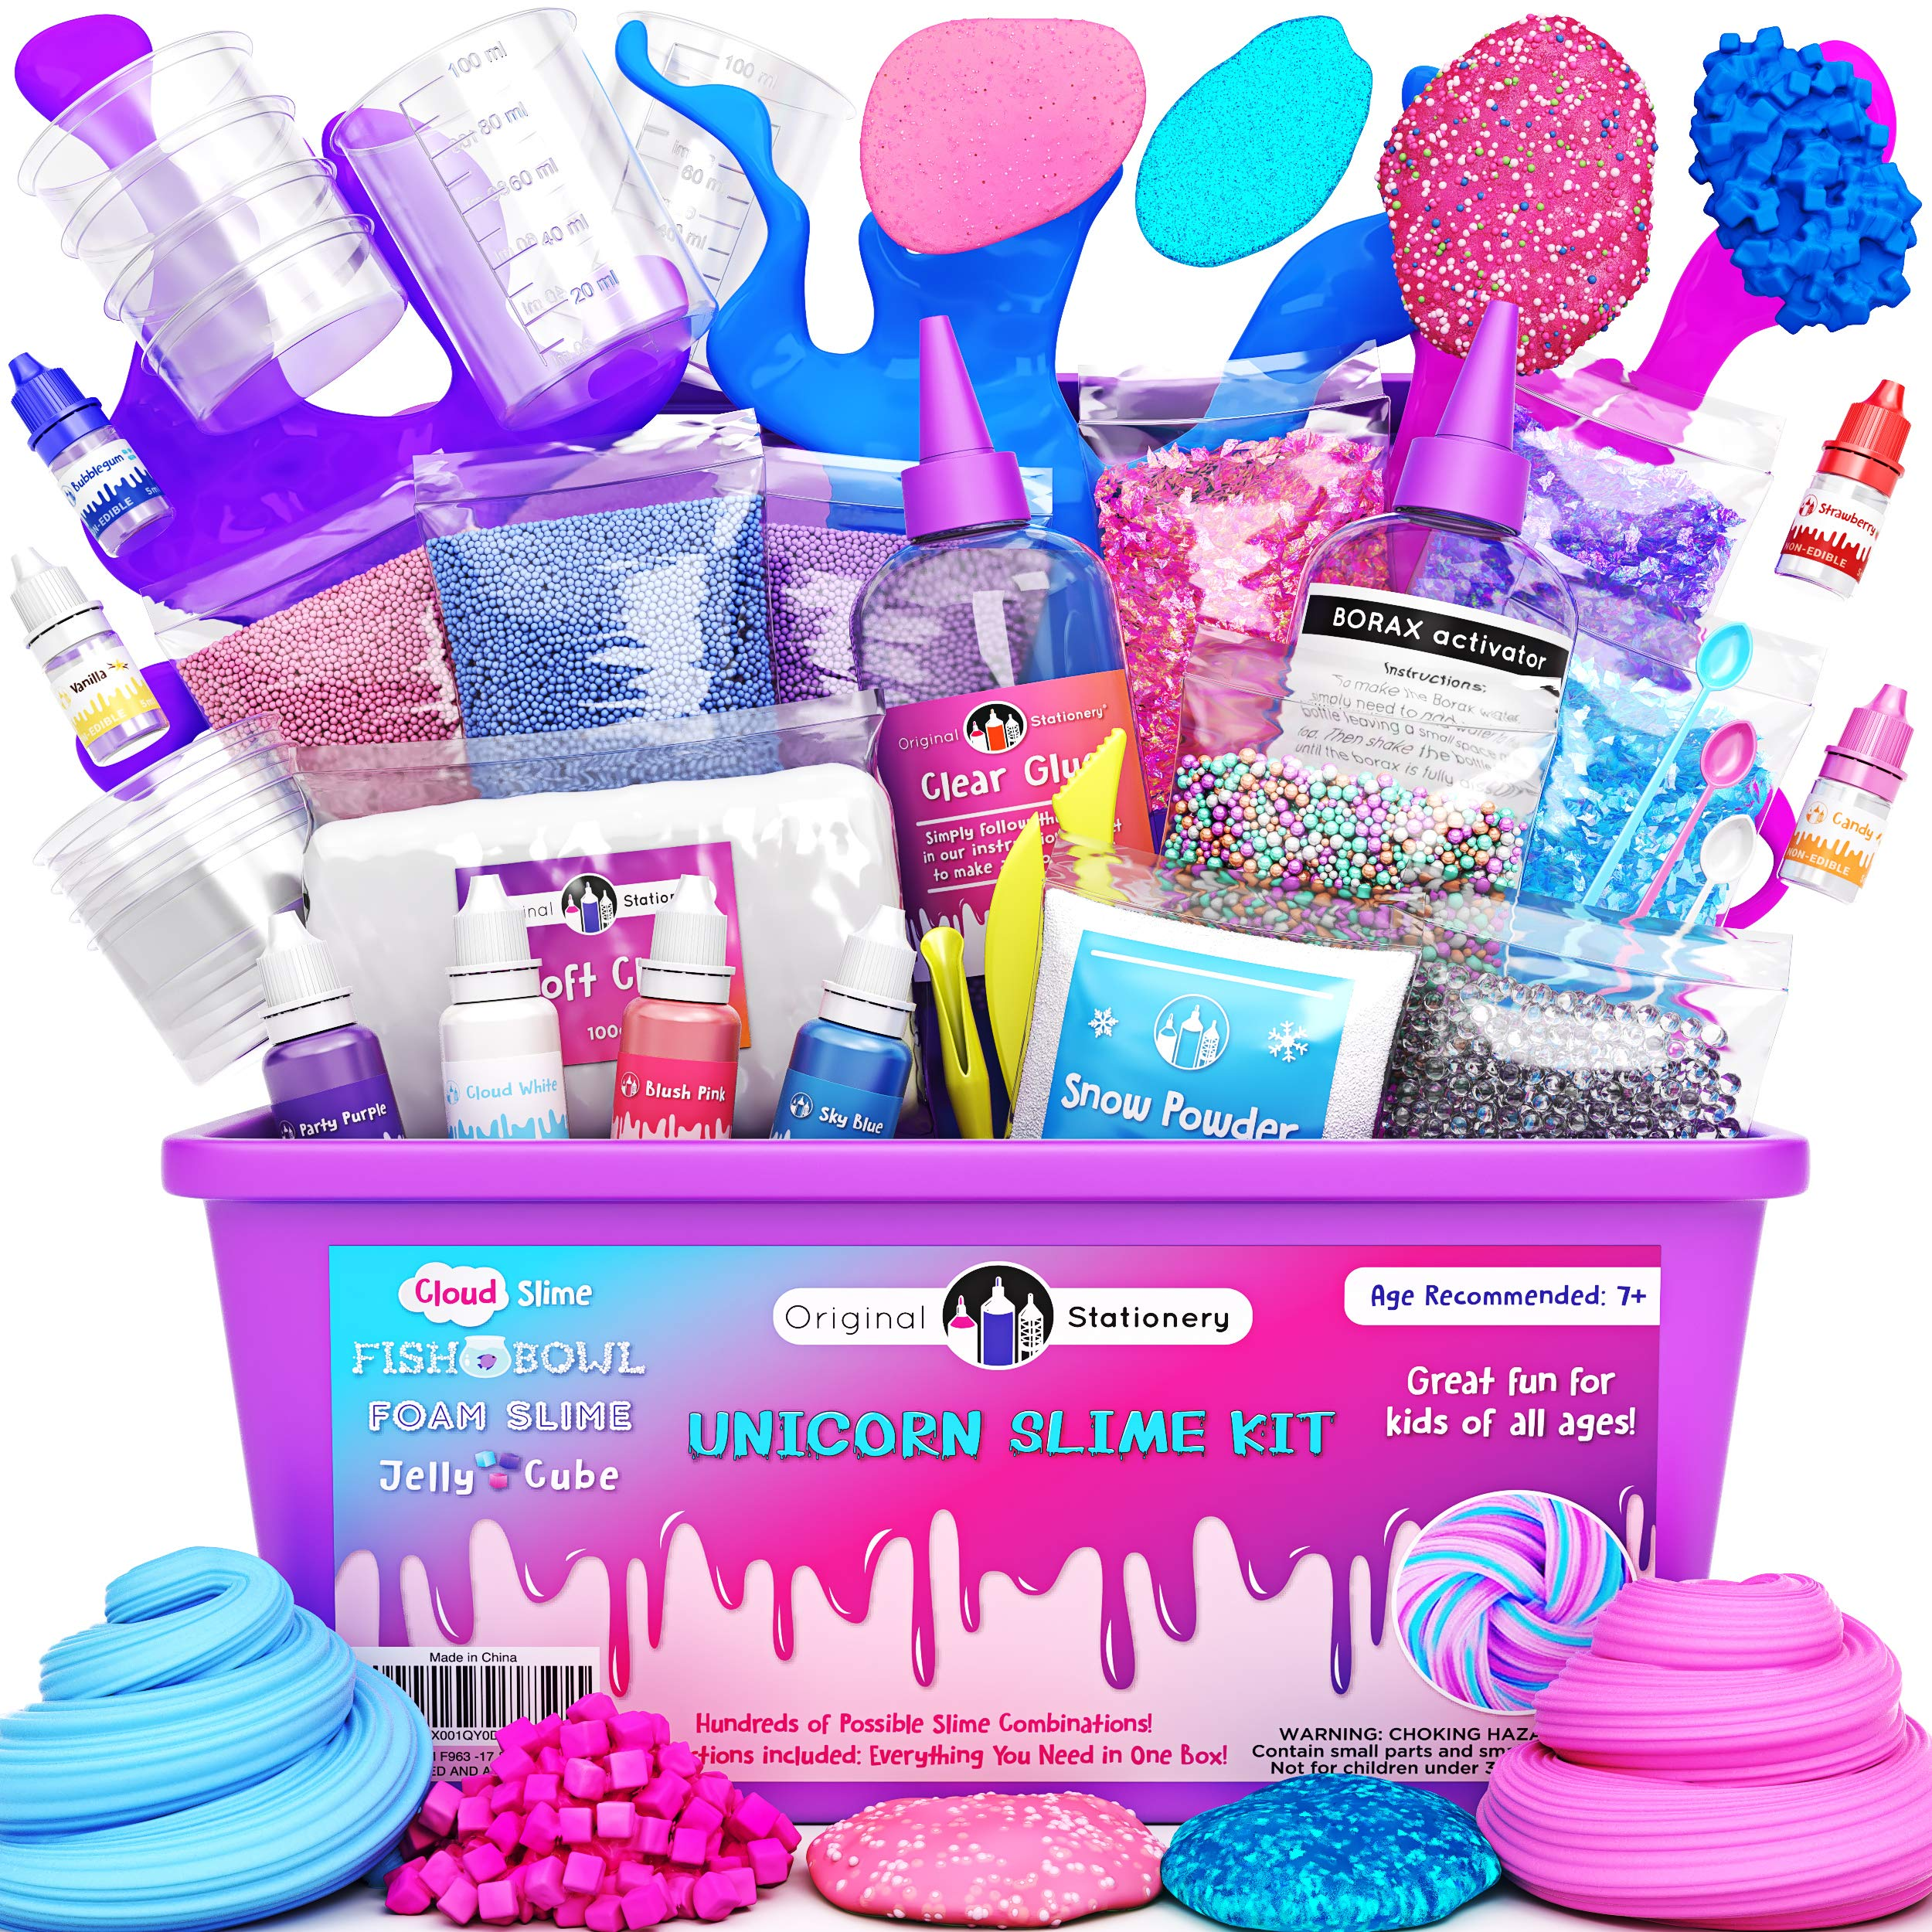 Original Stationery Slime Kit Unicornio Completo - Todo en una ...